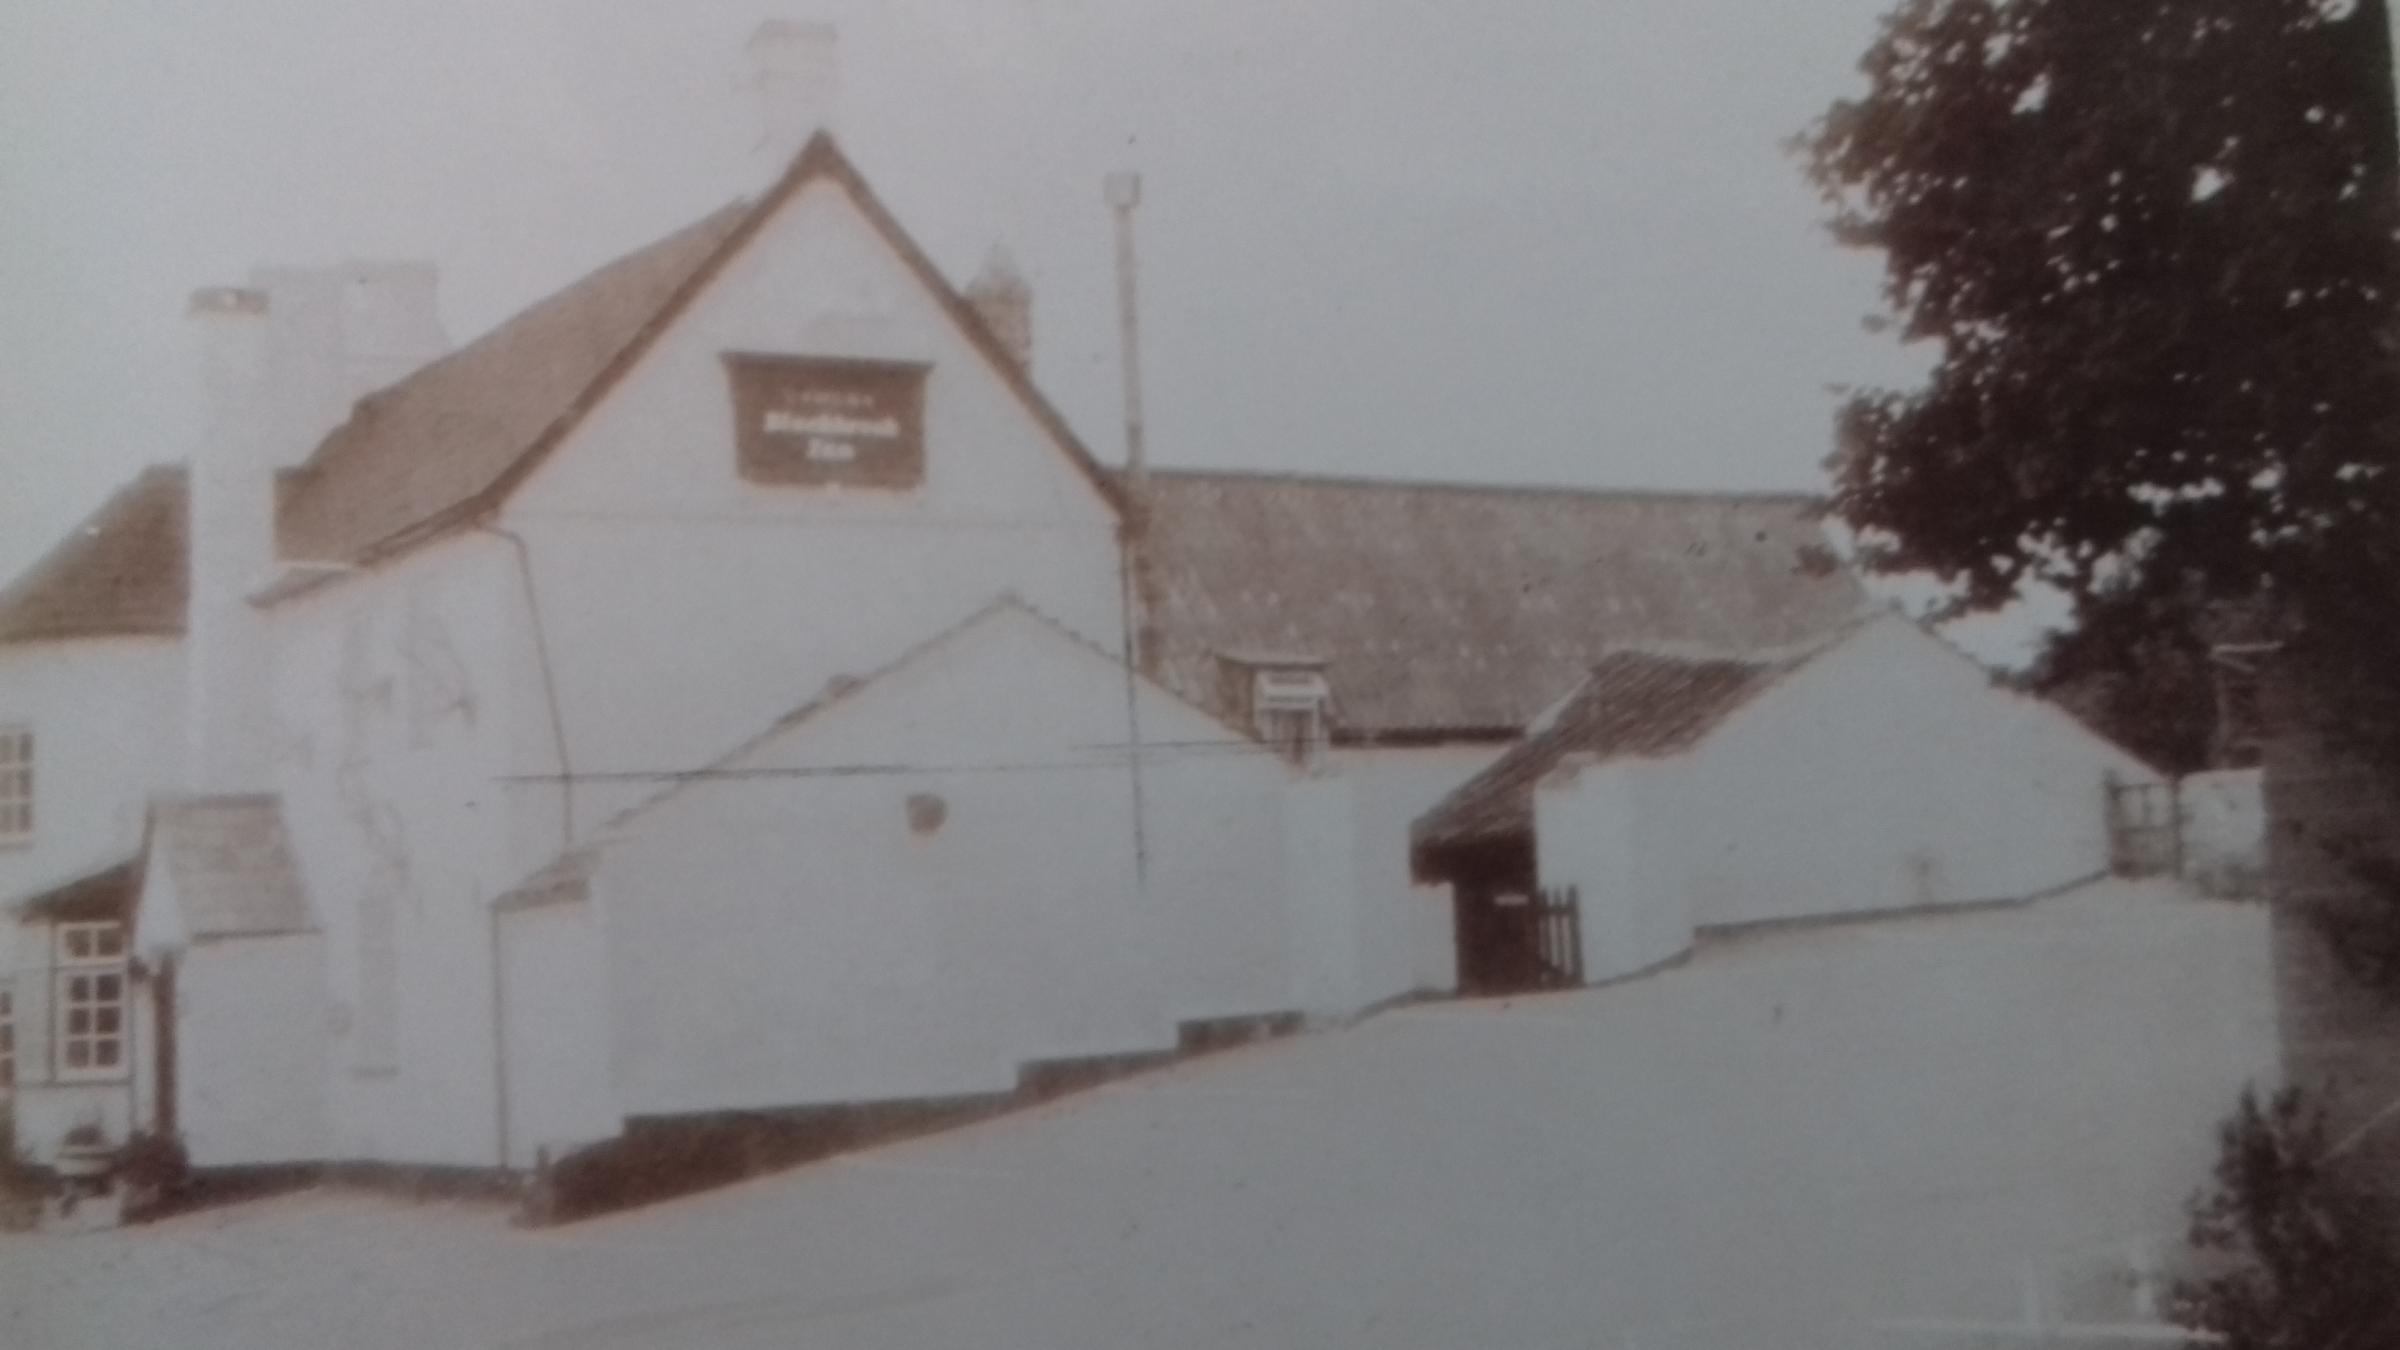 BLACK AND WHITE: A dated picture of the former Blackbrook Tavern